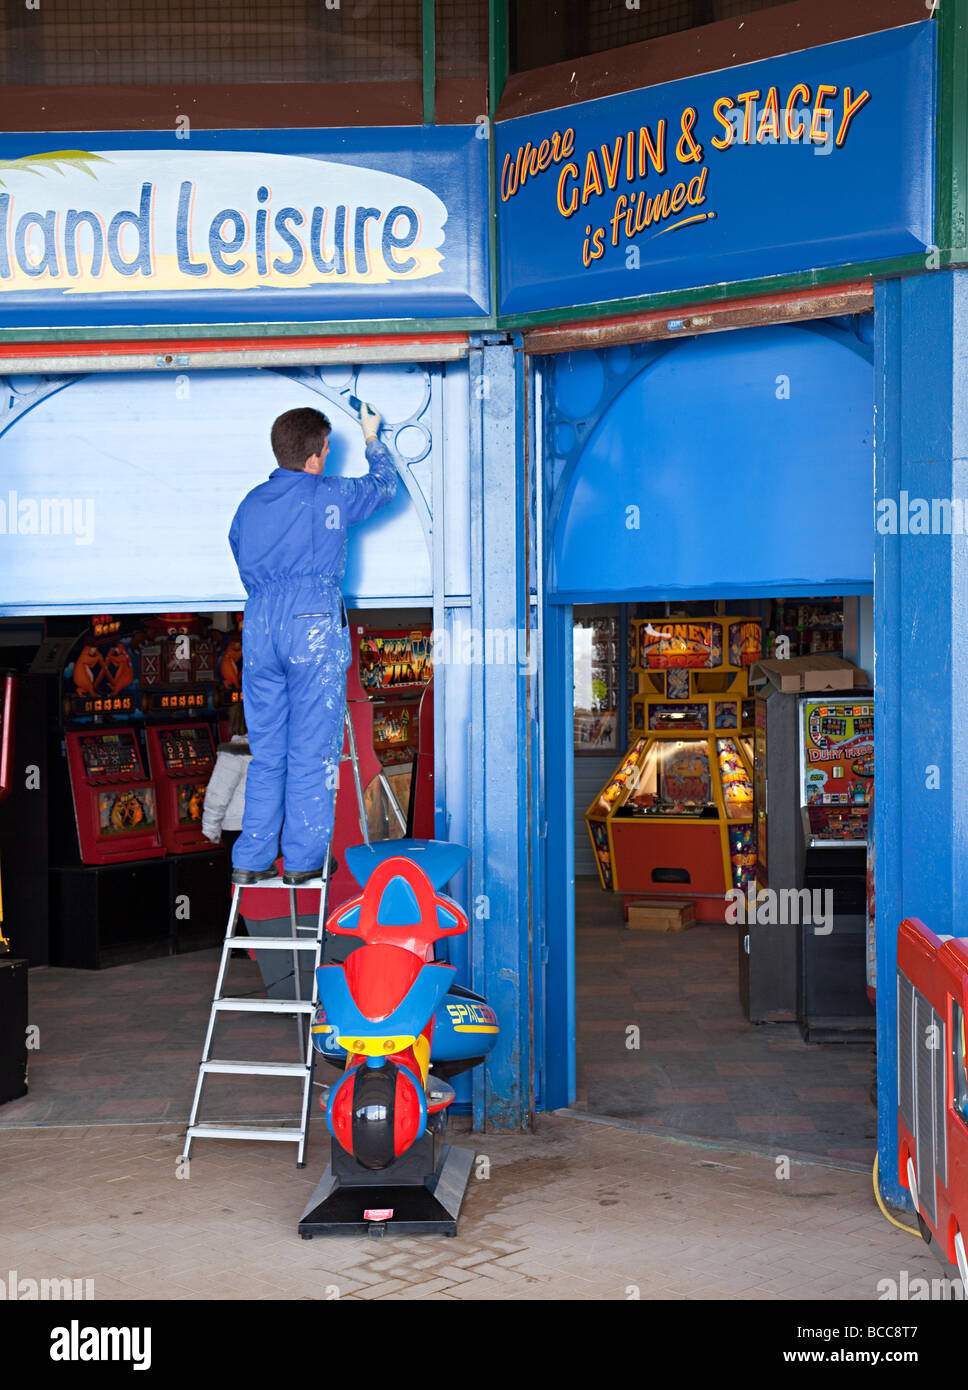 Maintenance on amusement arcade where Gavin and Stacey is filmed Barry island Wales UK - Stock Image